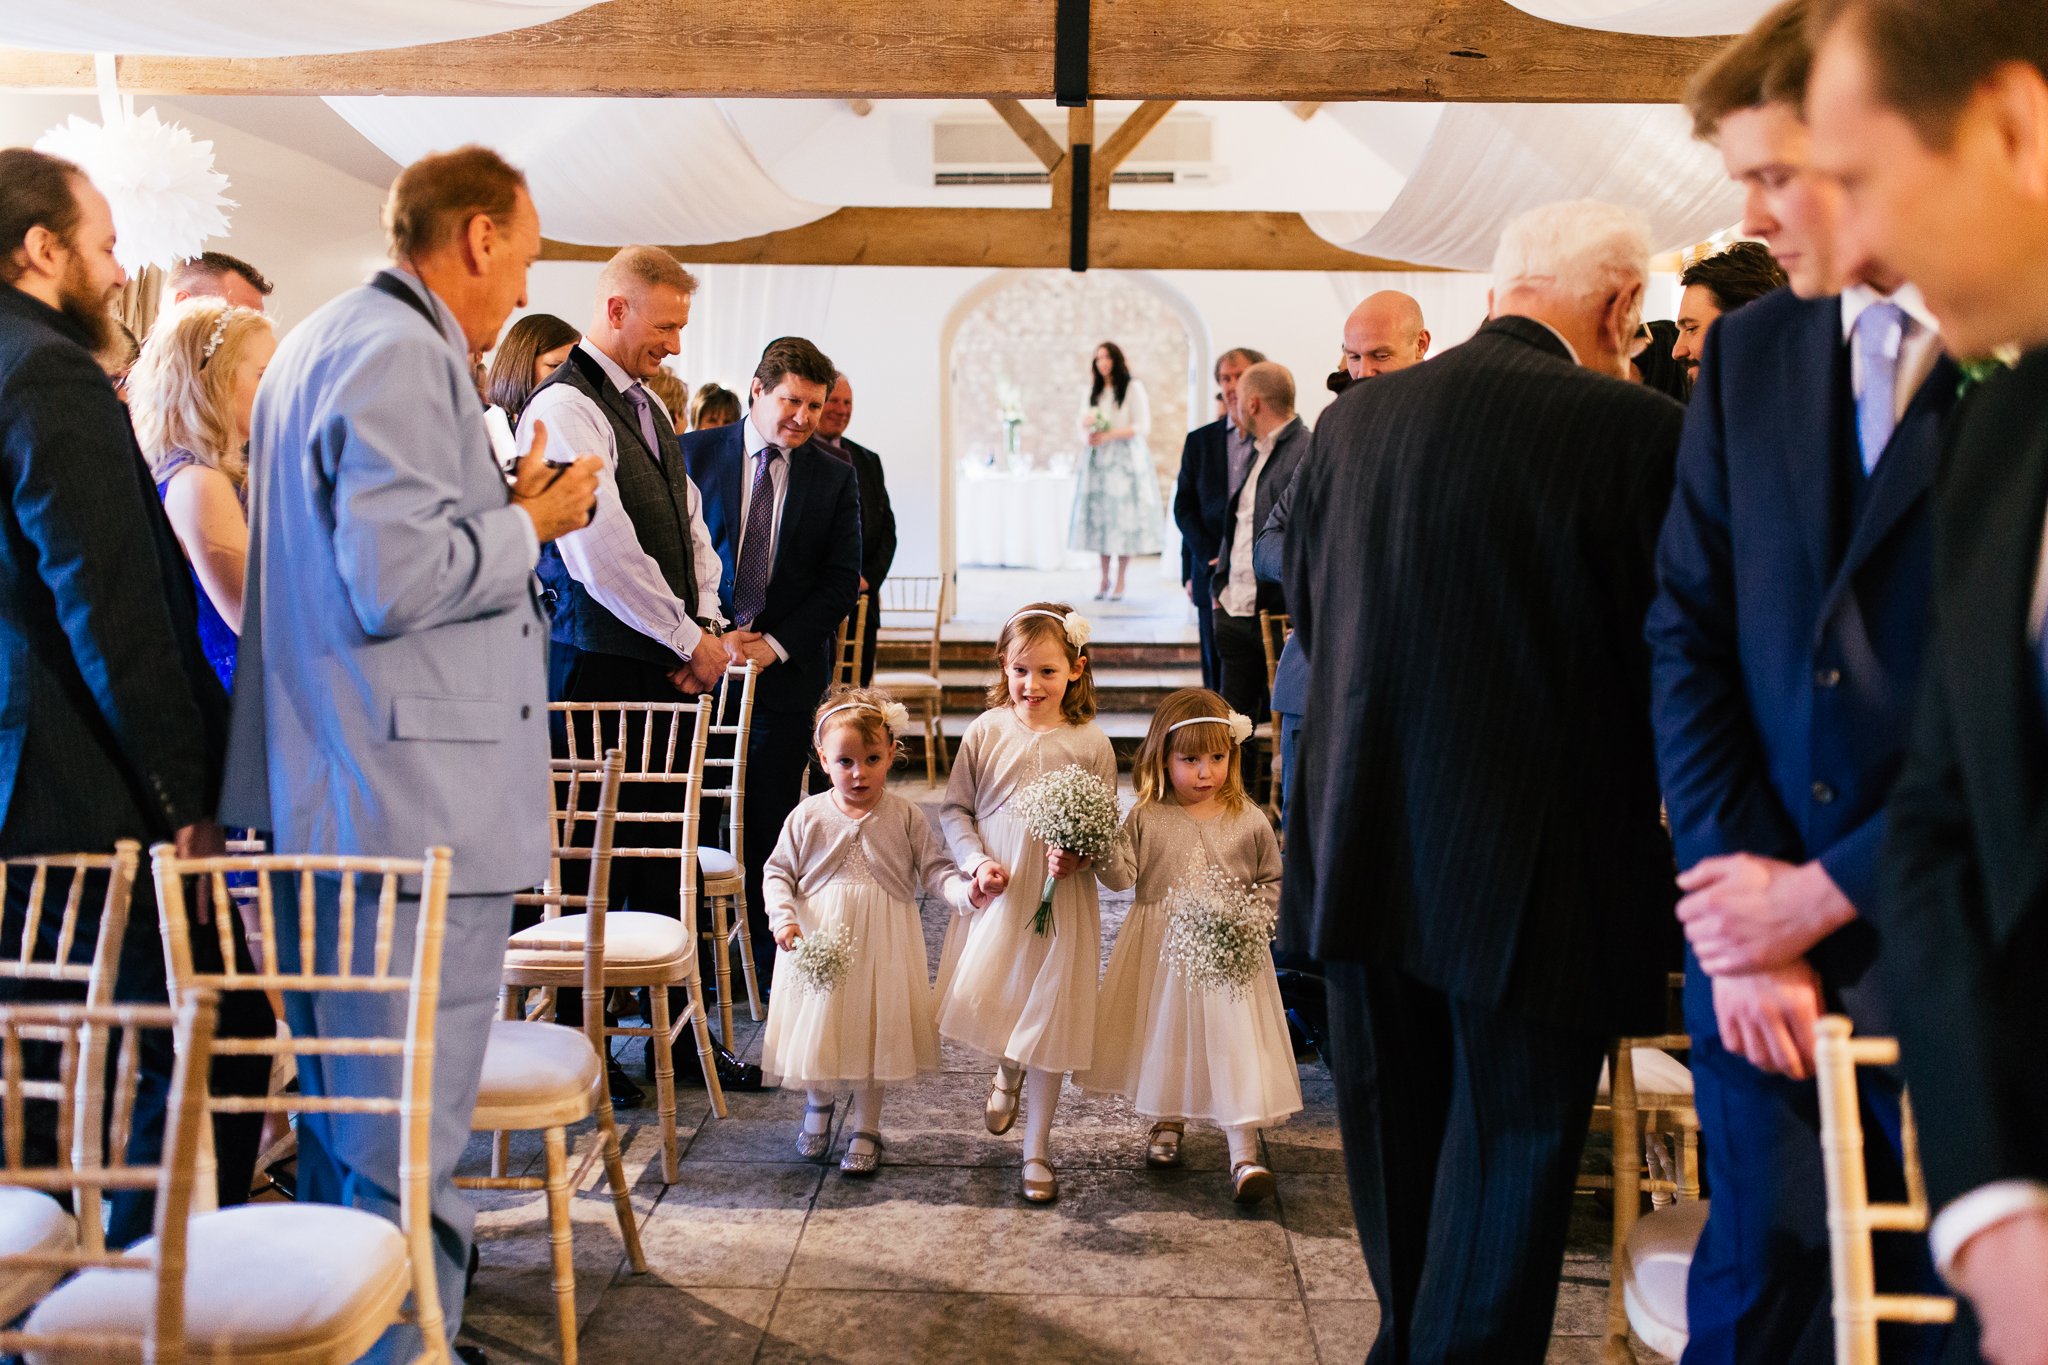 Farbridge Barn Wedding Creative Alternative Photo Chichester Joanna Nicole Photography (23 of 133).jpg